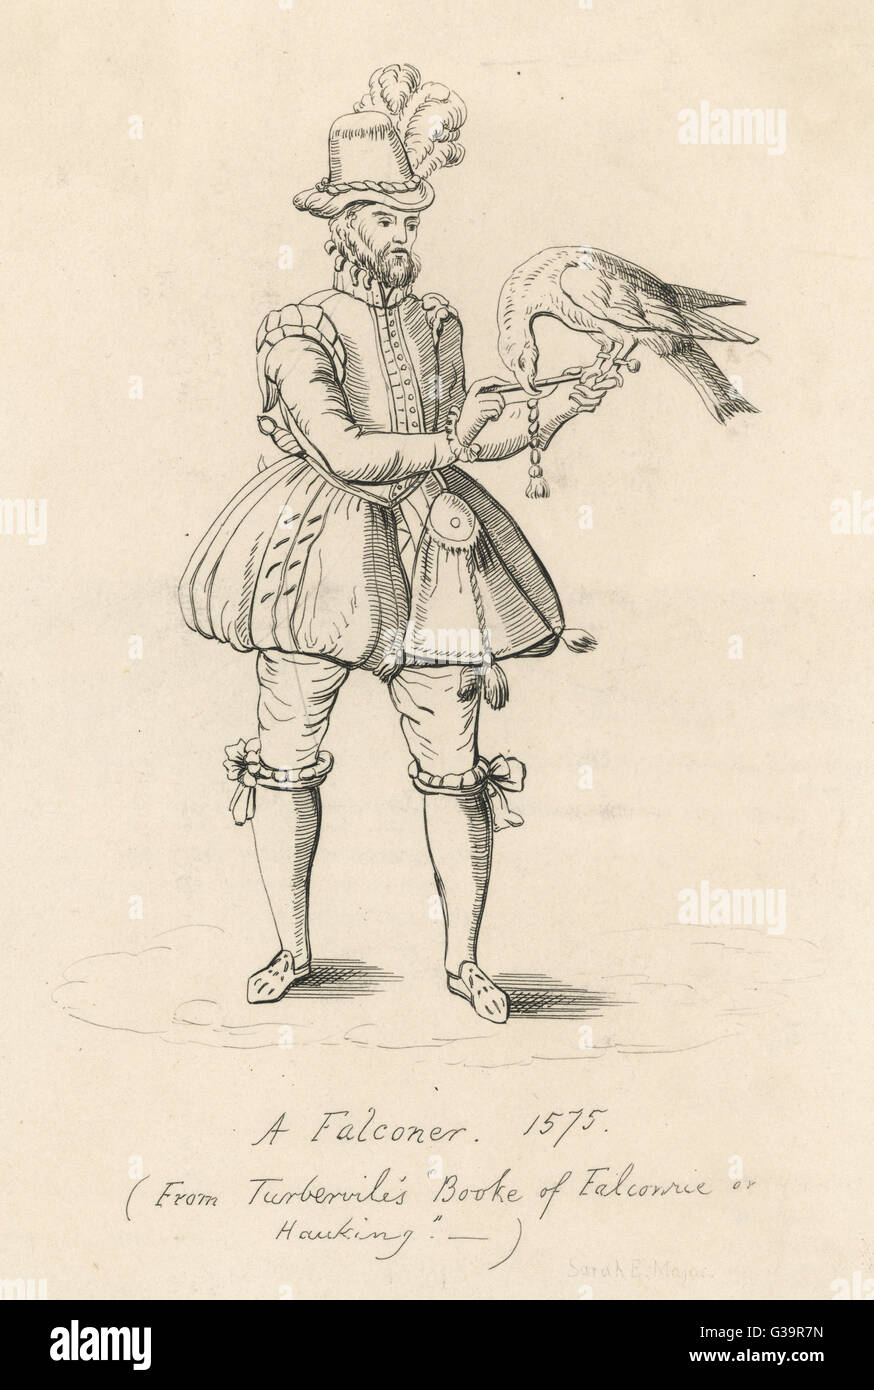 An Elizabethan falconer with  his bird         Date: 1575 - Stock Image